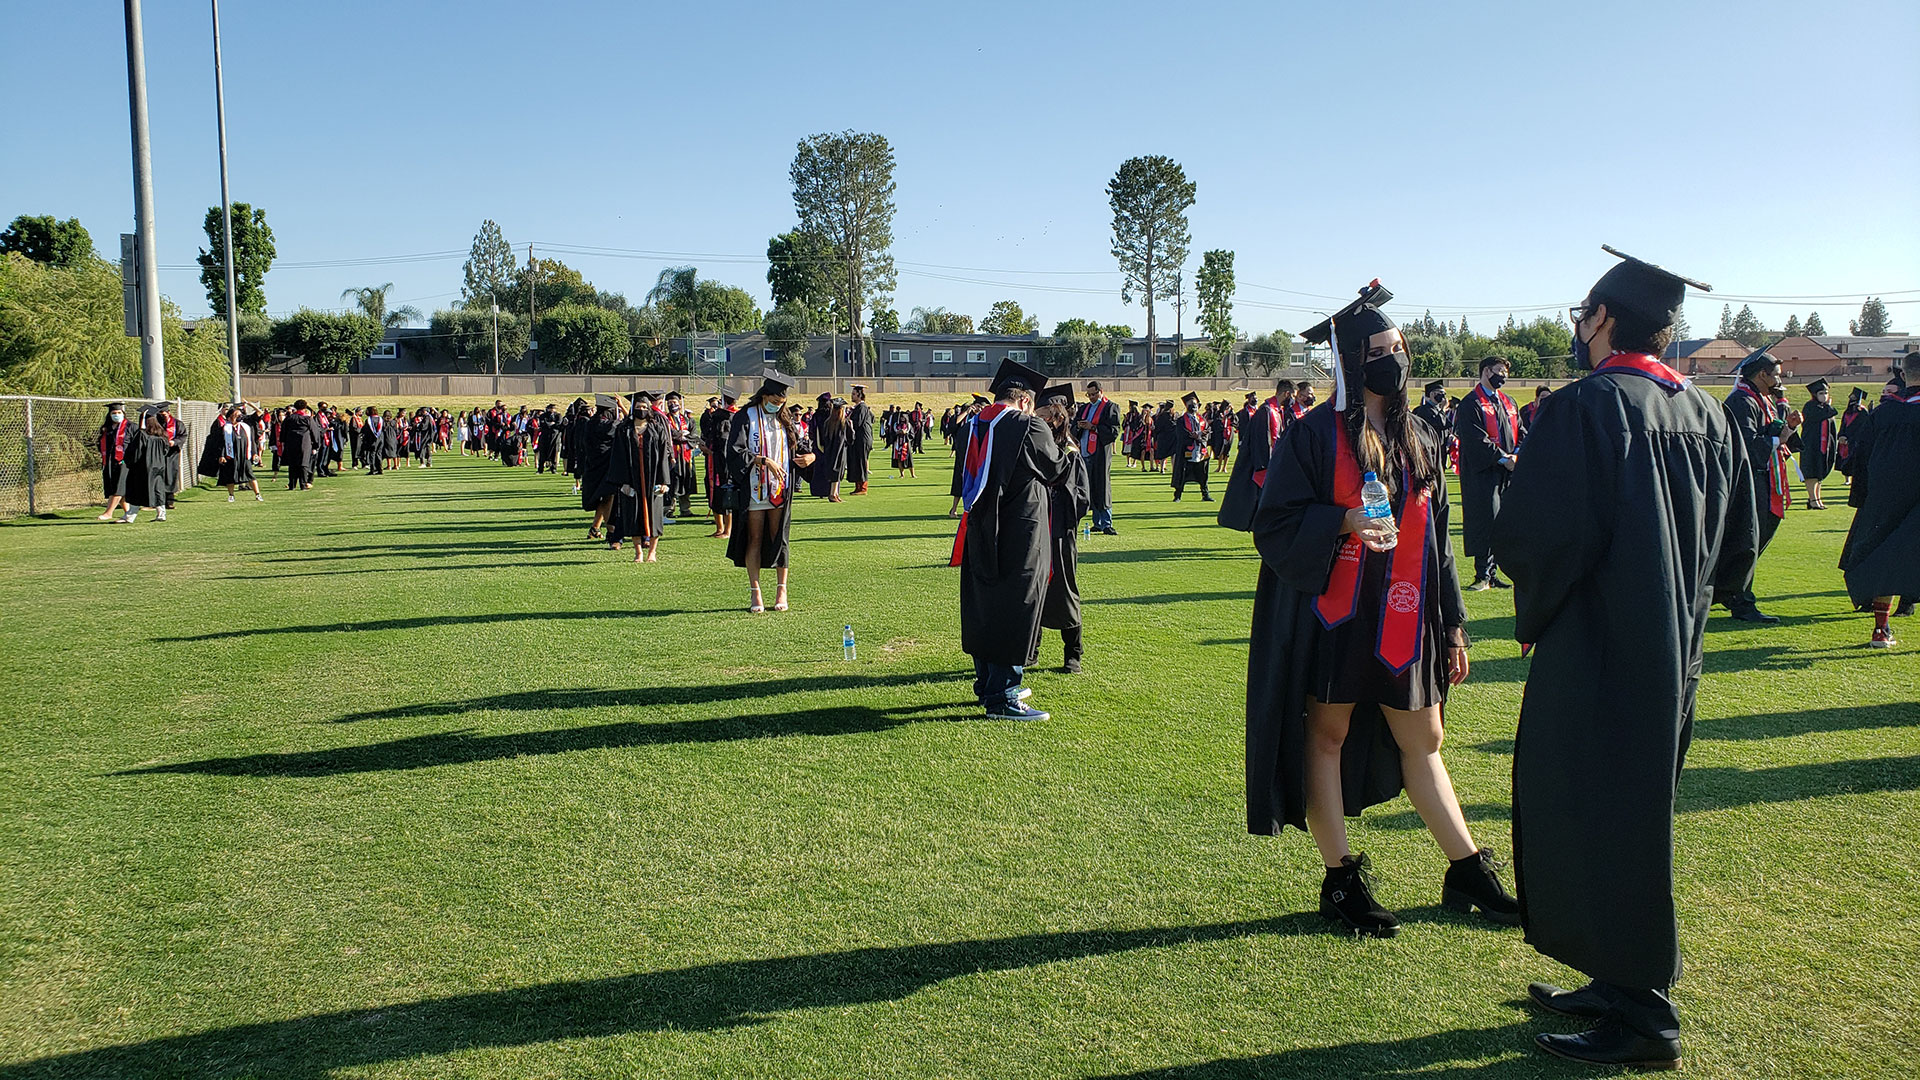 Grads line up, ready for the procession.